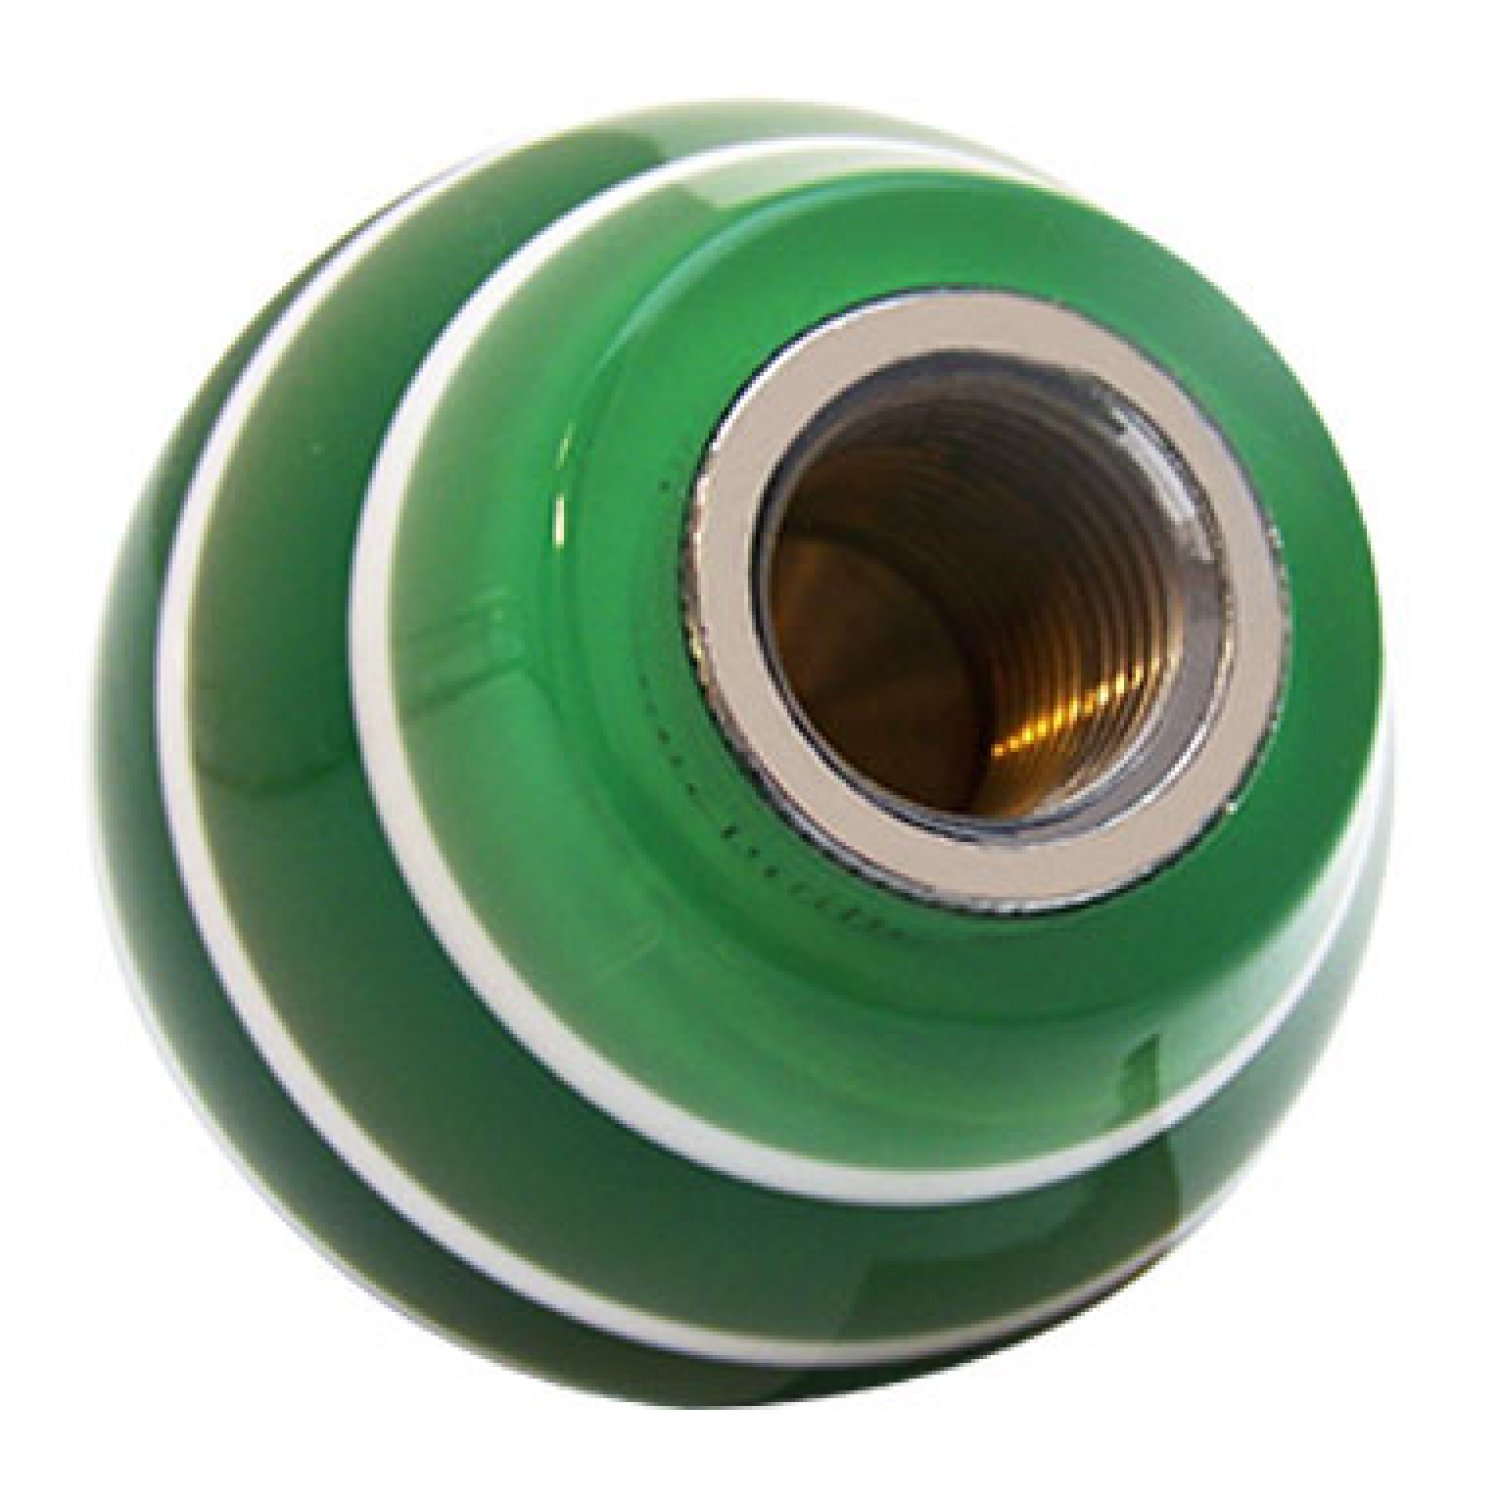 Black Transfer Case #4 American Shifter 127633 Green Stripe Shift Knob with M16 x 1.5 Insert